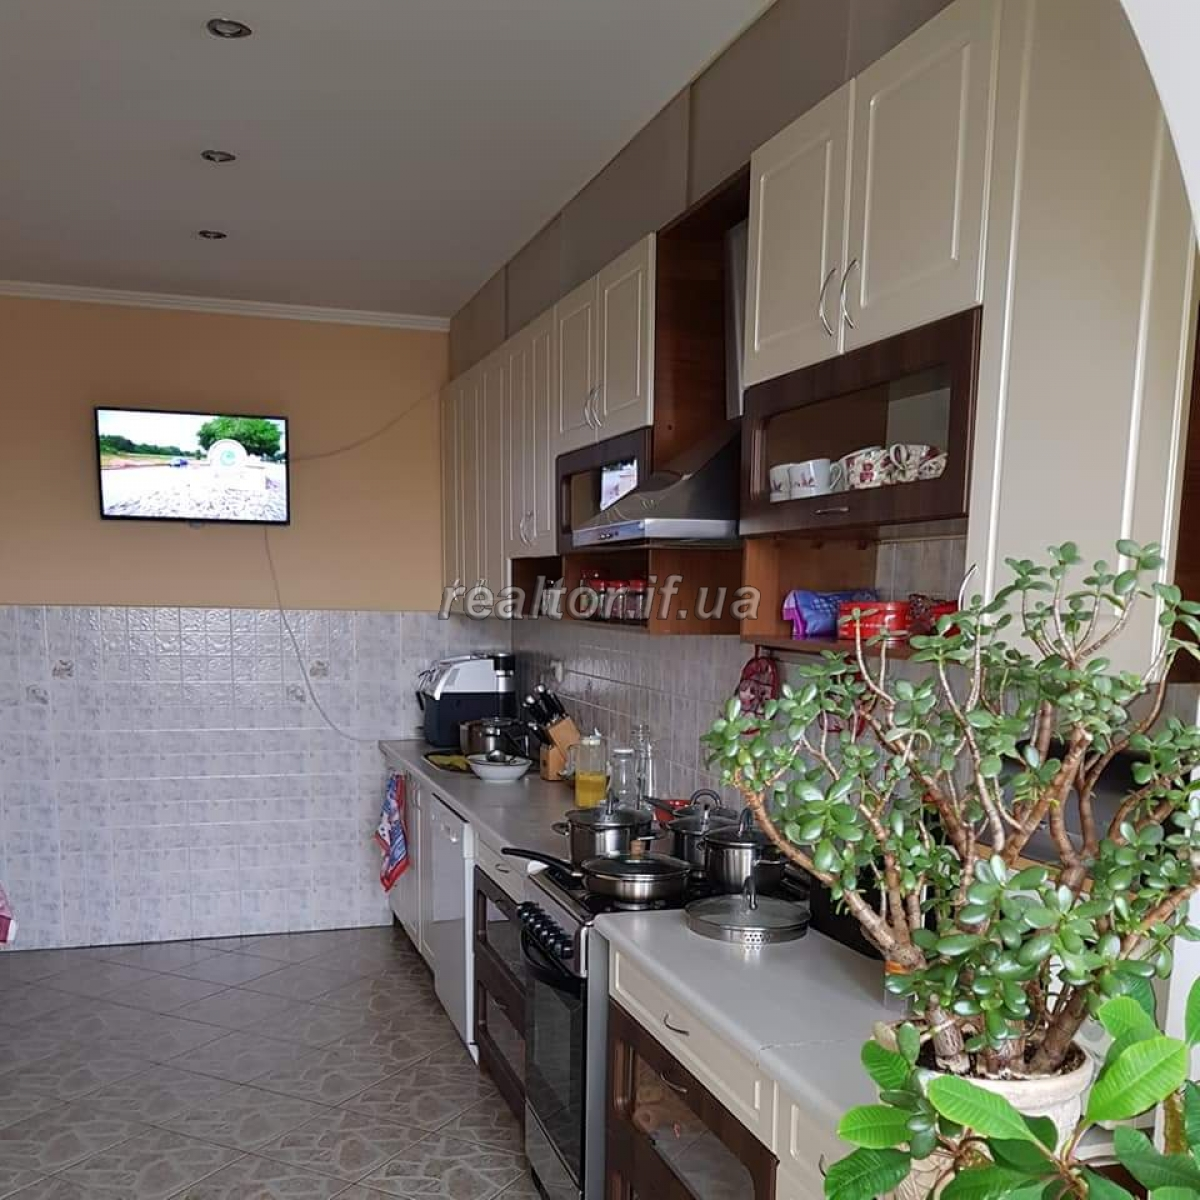 Apartment with renovated and furnished apartment in a residential building on the street Fedkovych